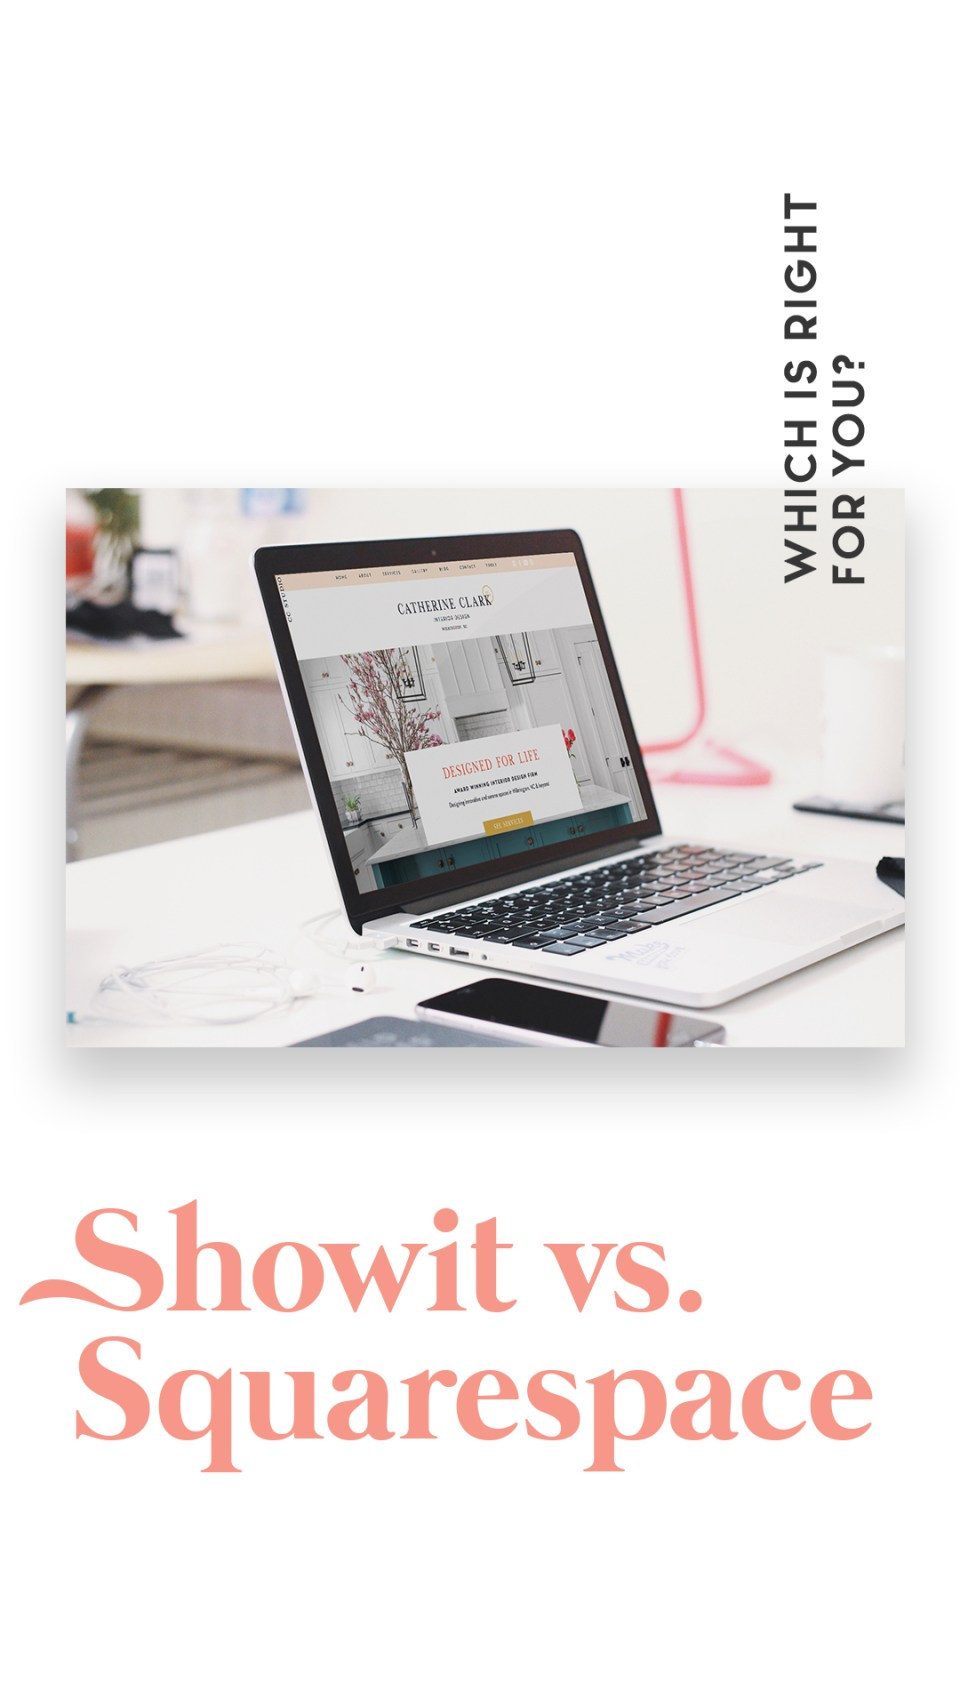 Showit vs Squarespace — which one is right for you?